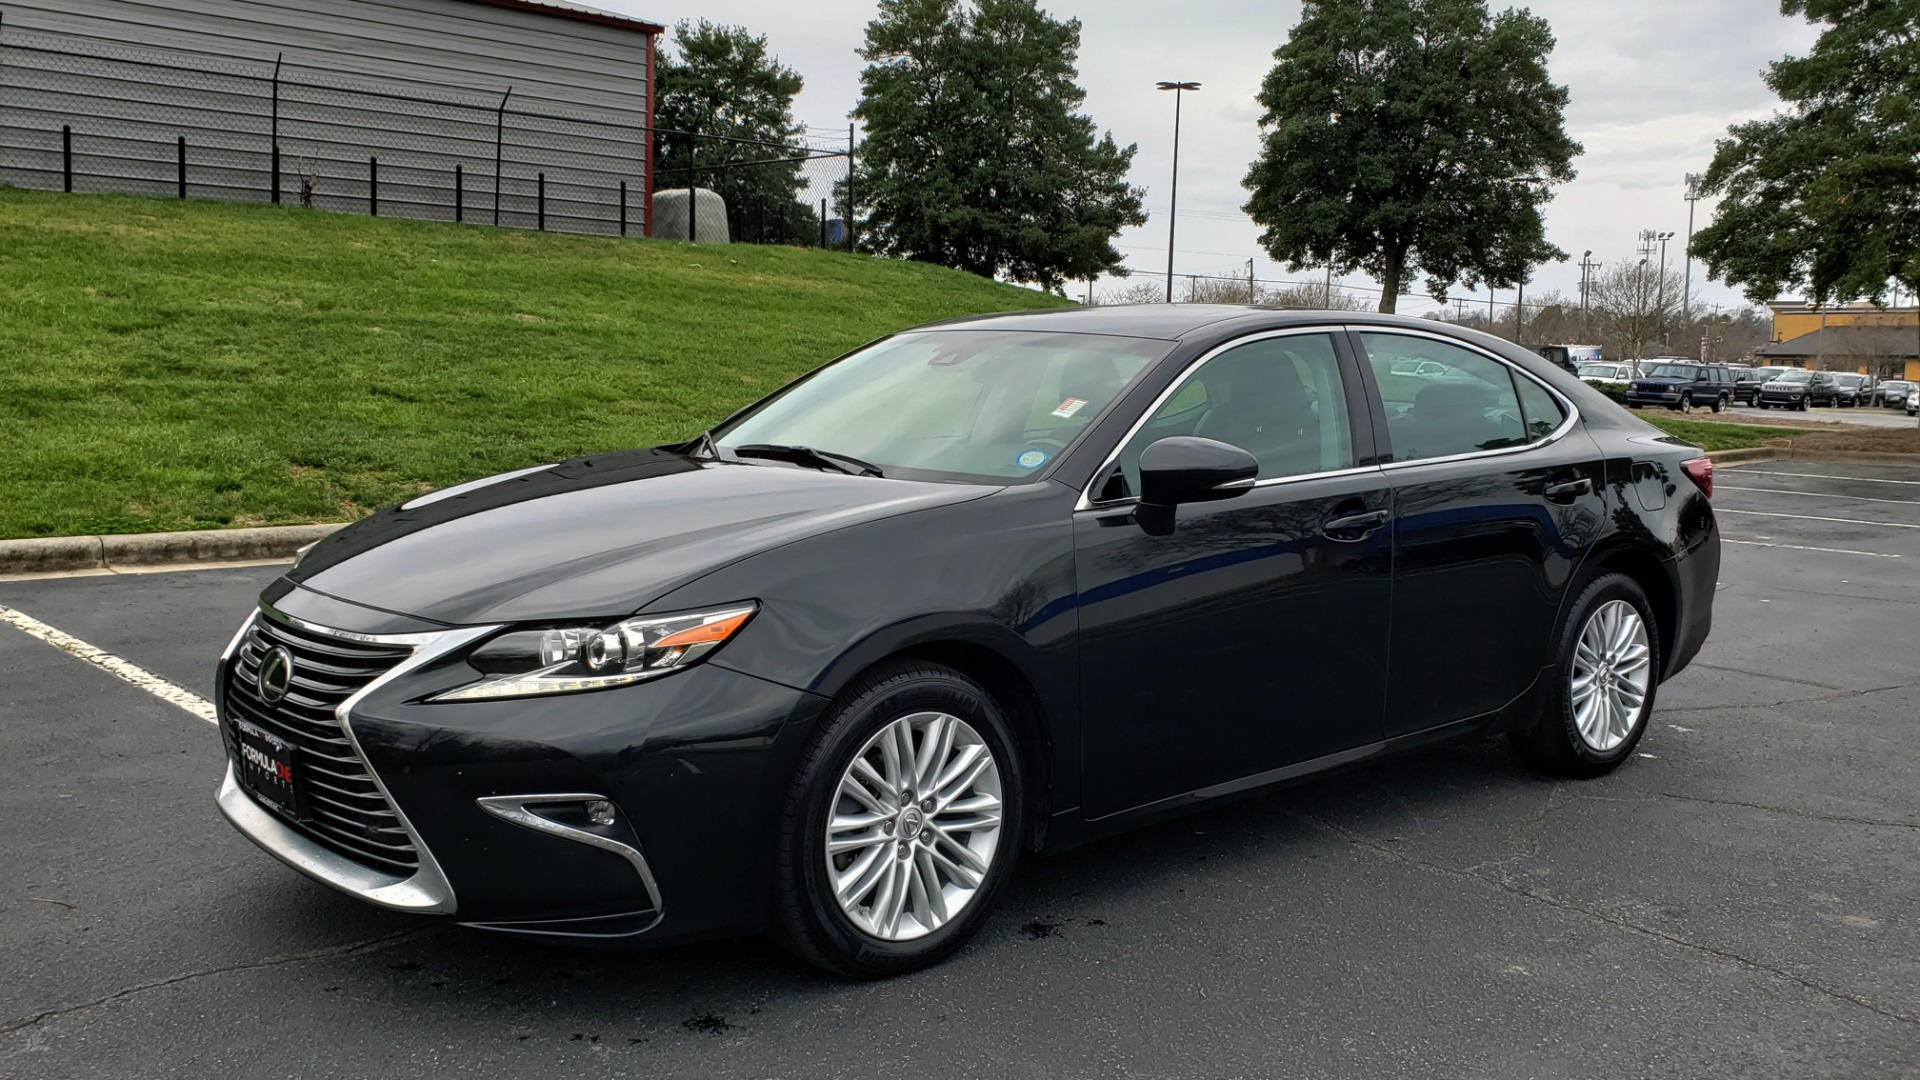 Used 2017 Lexus ES 350 PREMIUM / SUNROOF / PARK ASST / BSM / VENT SEATS / REARVIEW for sale Sold at Formula Imports in Charlotte NC 28227 1